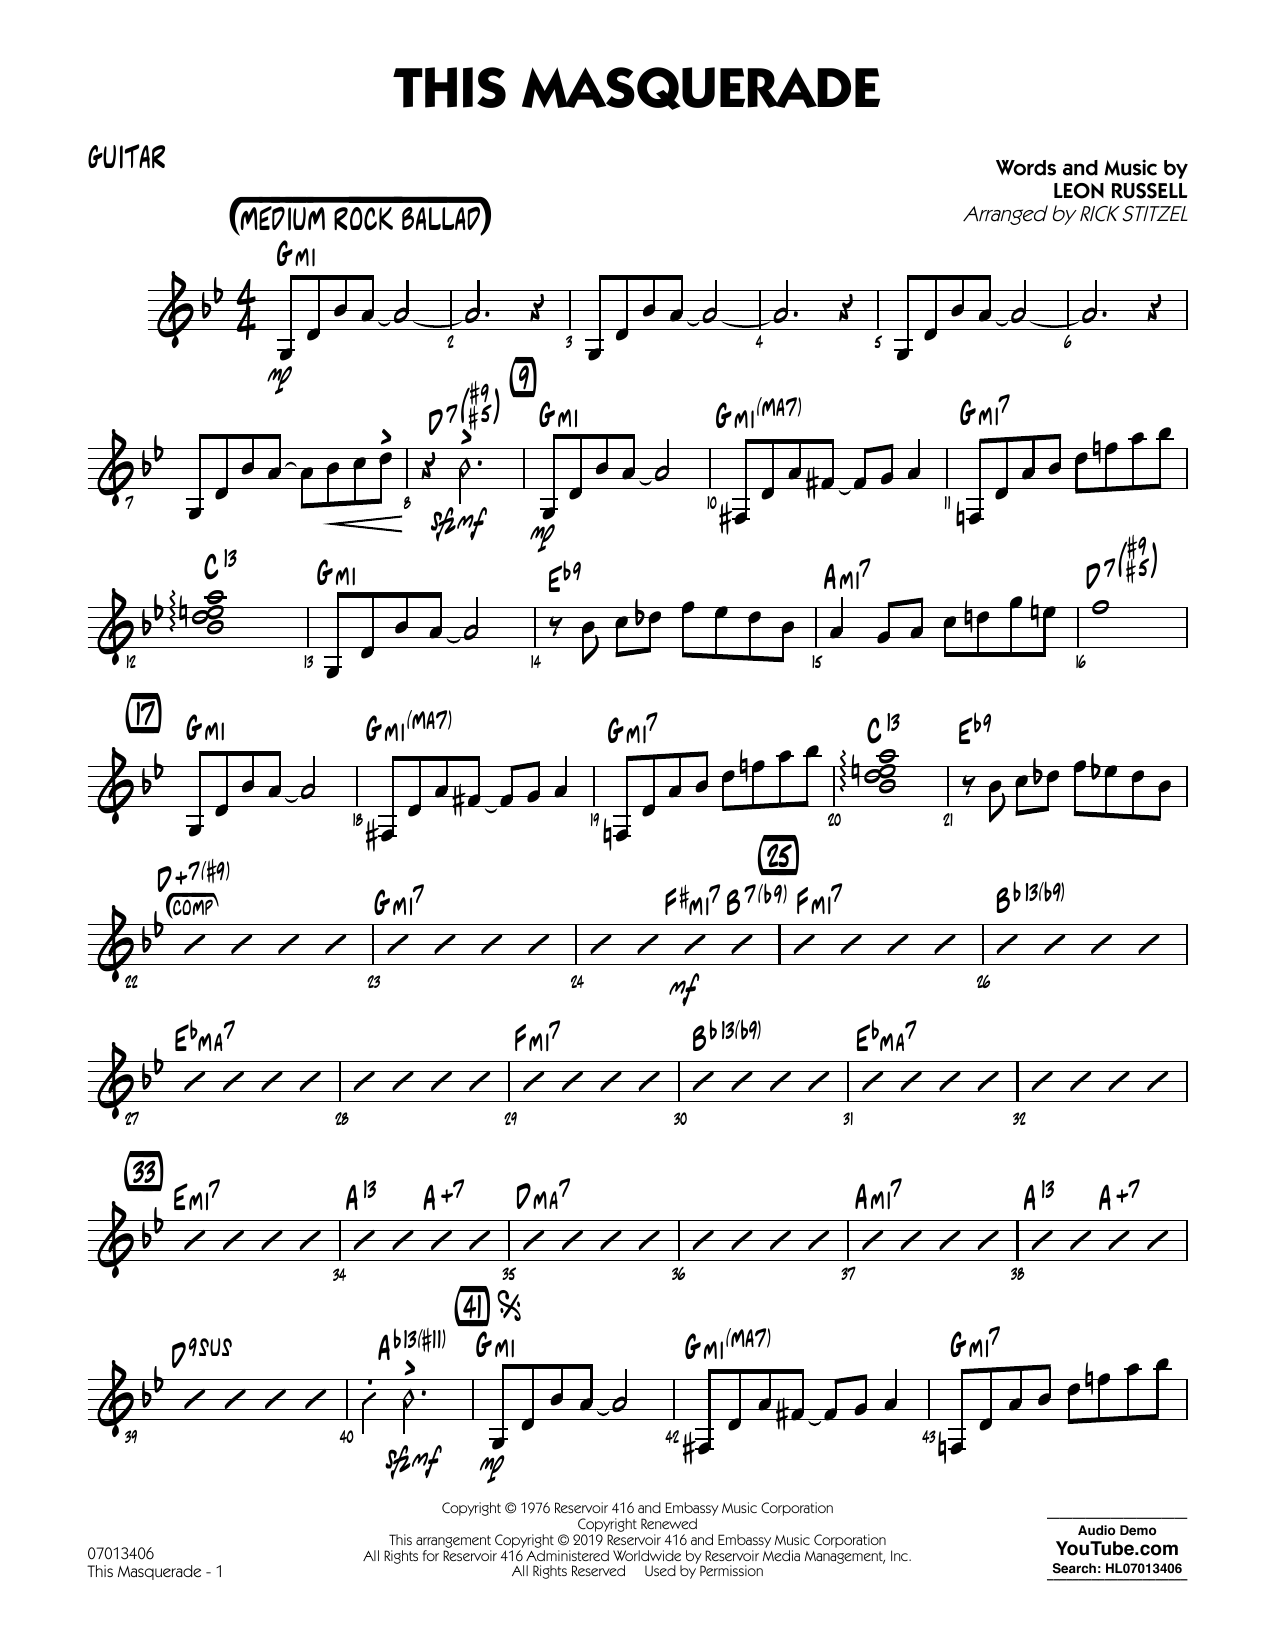 Leon Russell This Masquerade (arr. Rick Stitzel) - Guitar sheet music notes and chords. Download Printable PDF.